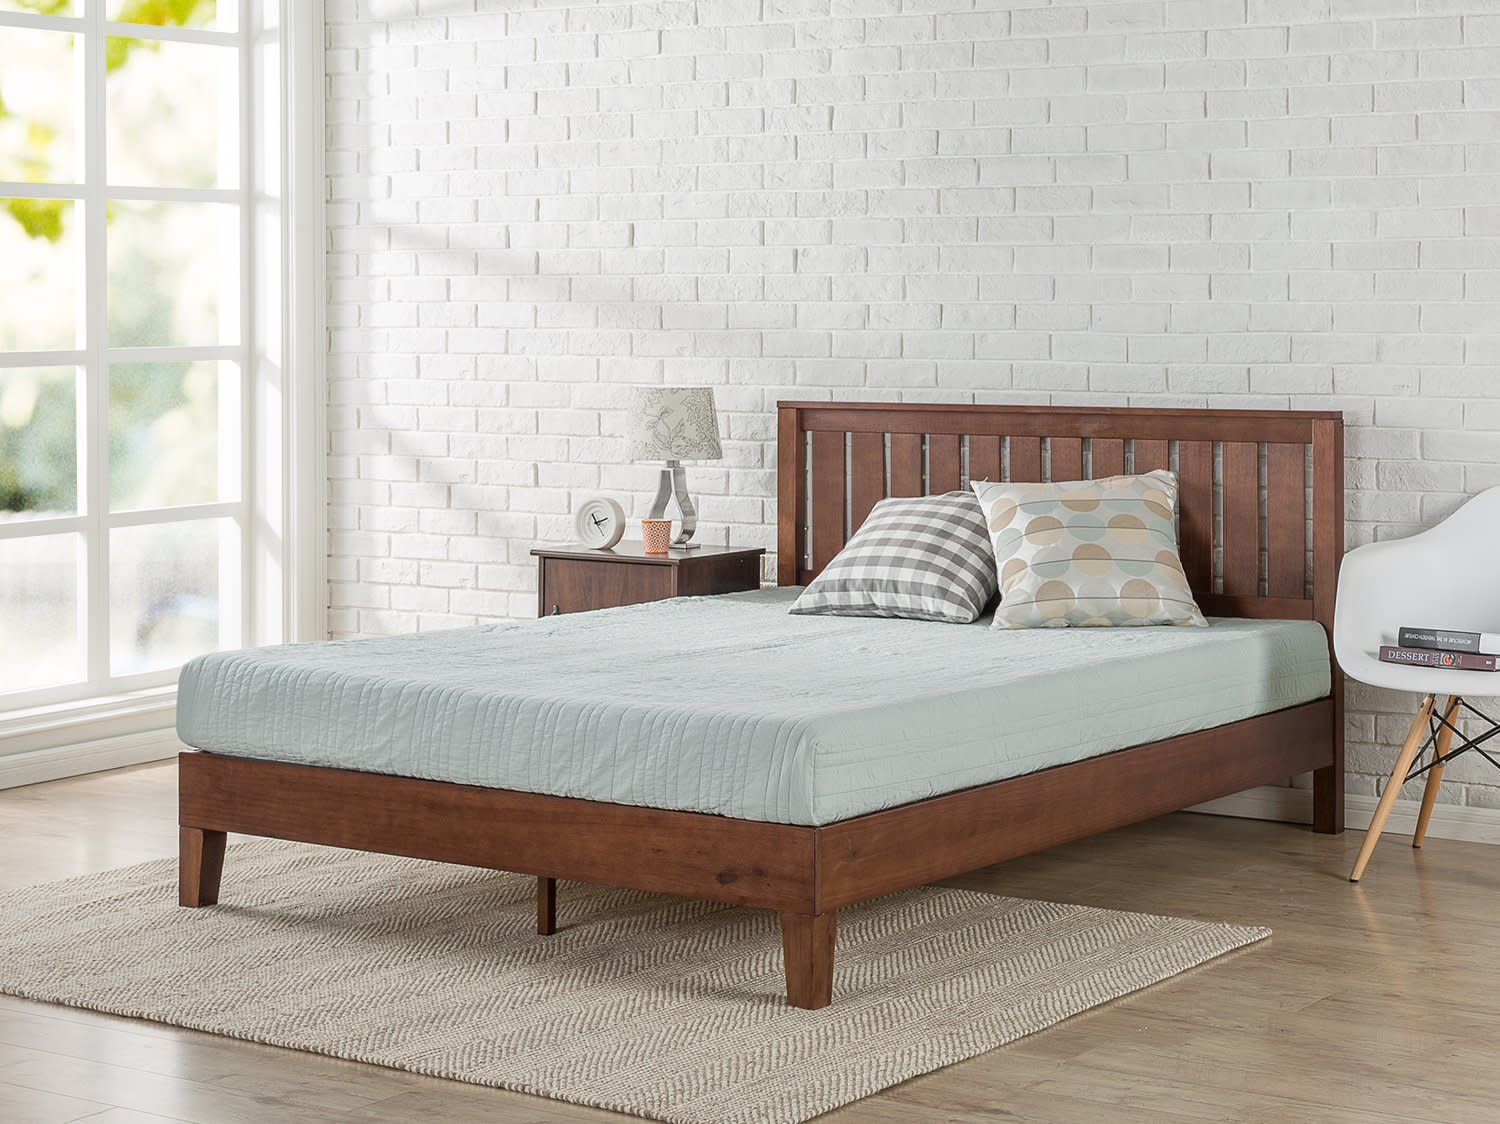 Solid Wood Platform Bed with Headboard Wood Slat Support Antique ...